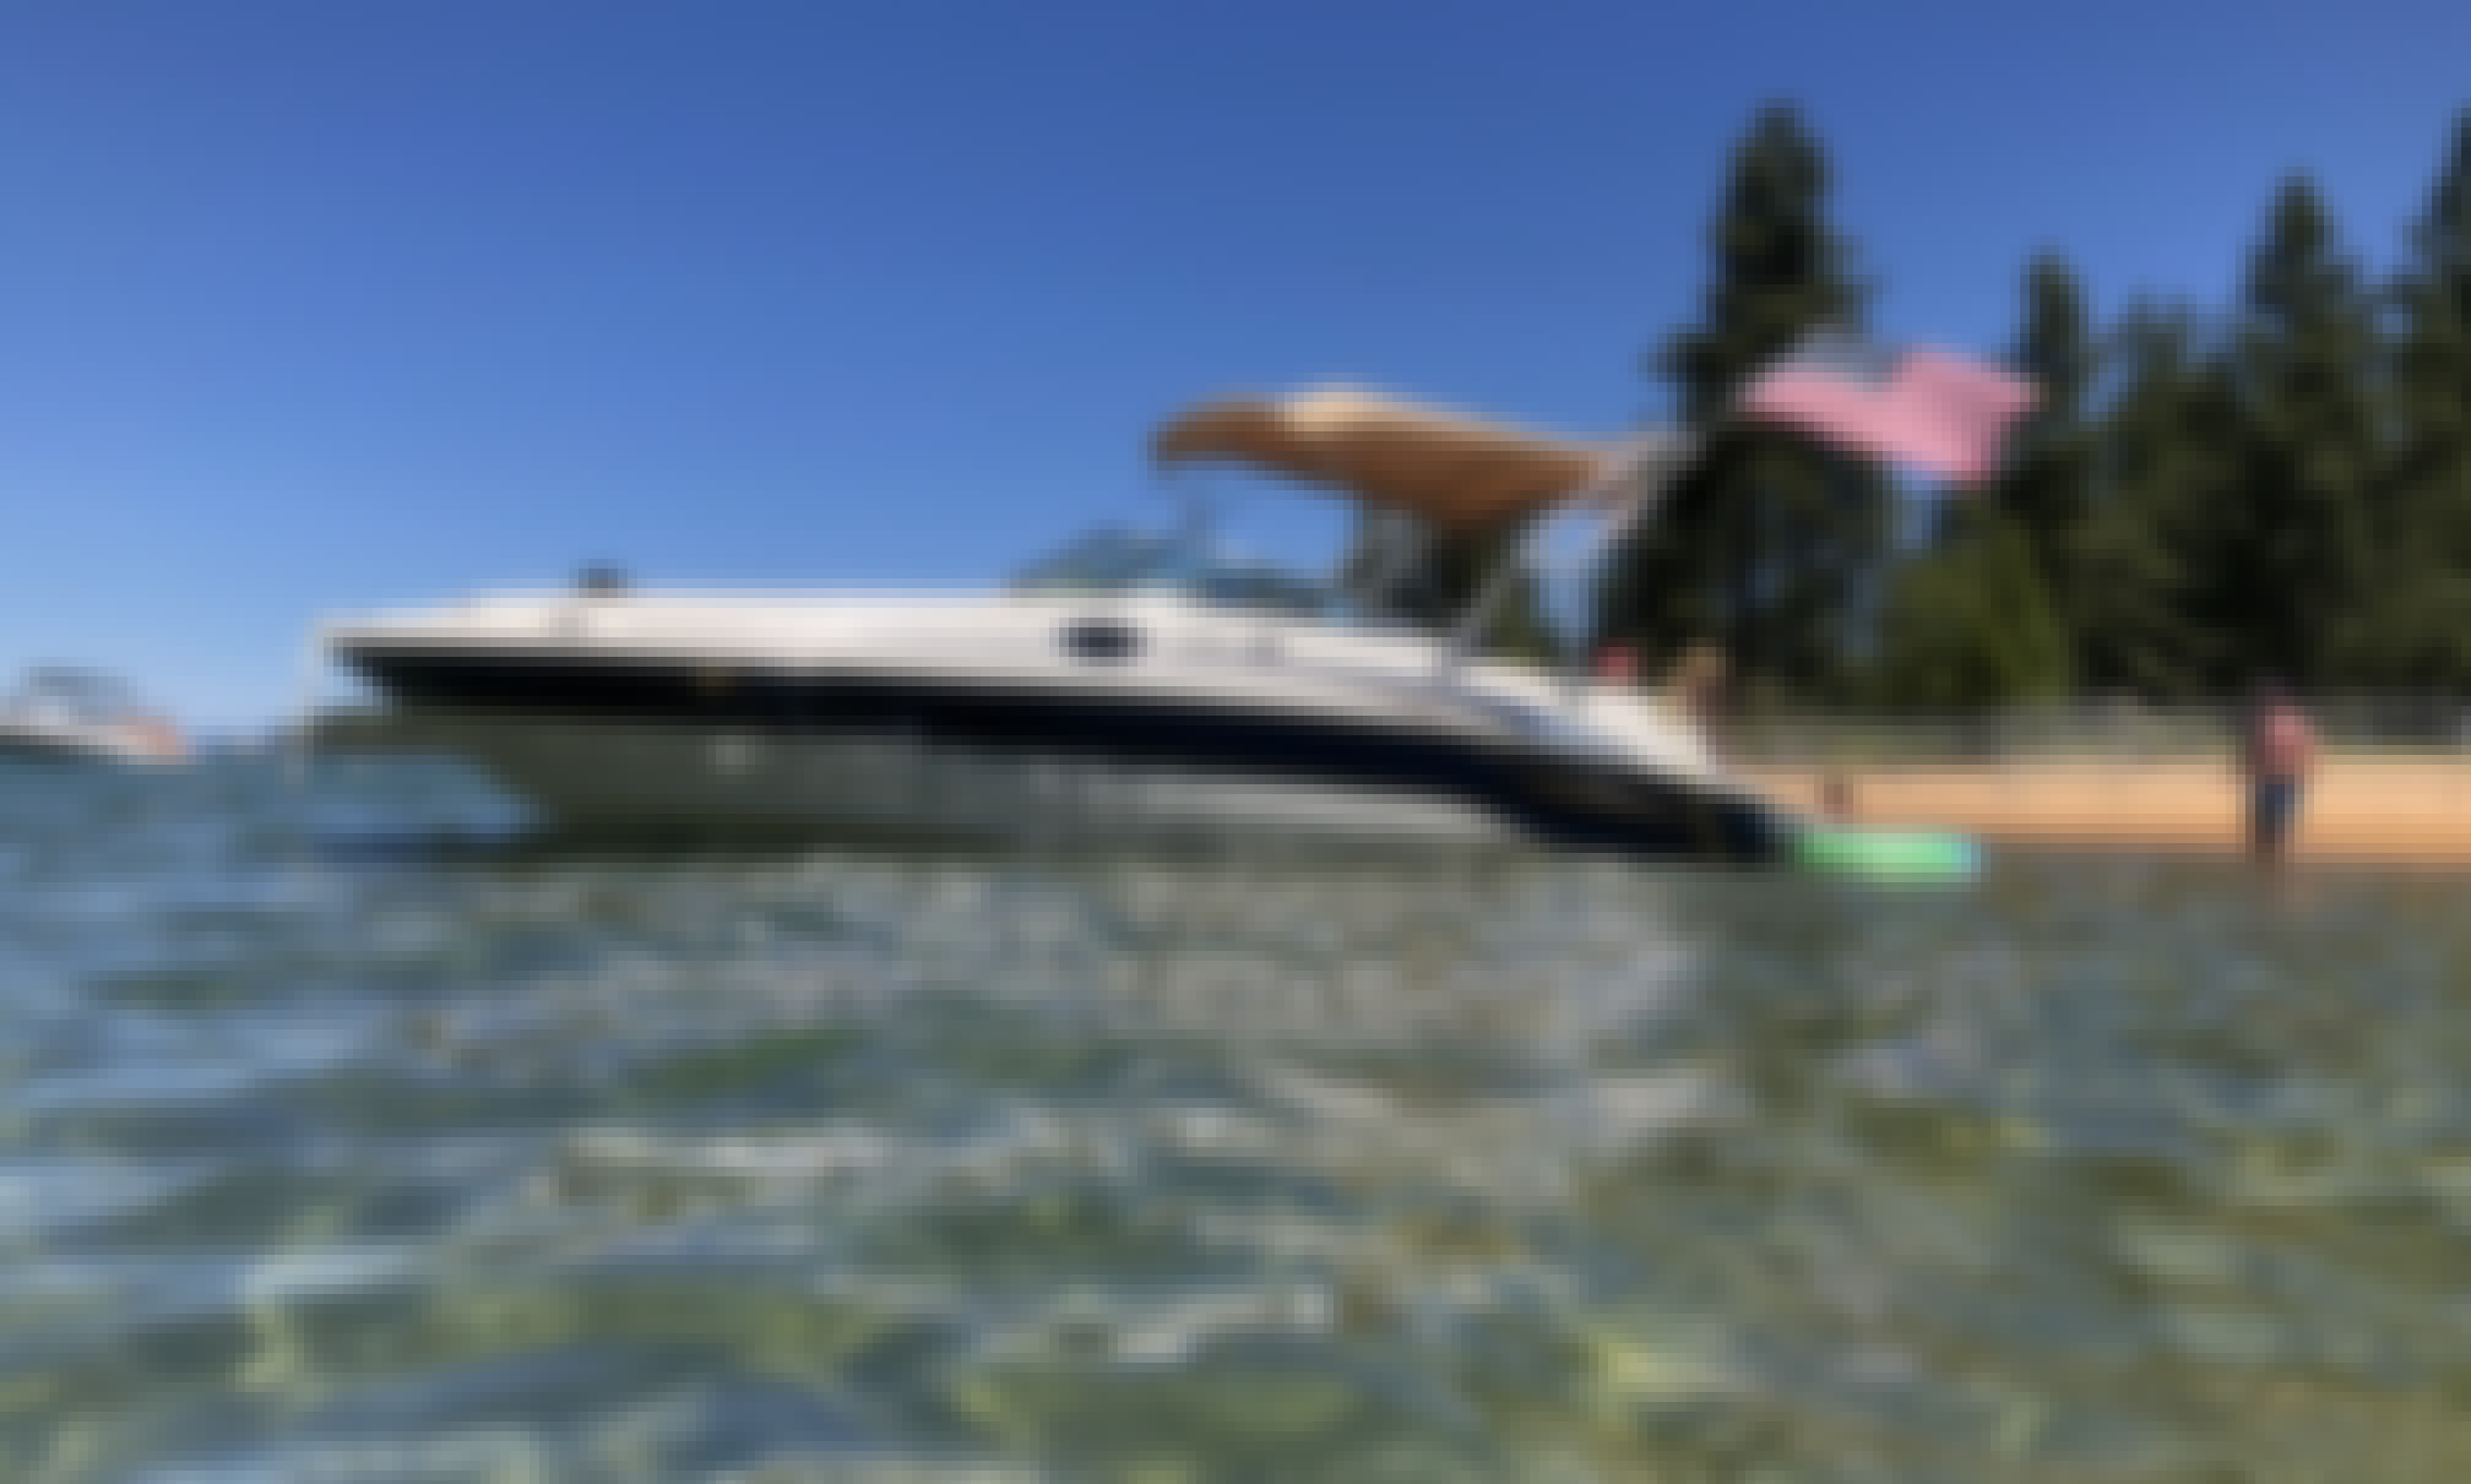 24' Sea Ray Sundeck Rental with USCG Licensed Captain in South Lake Tahoe